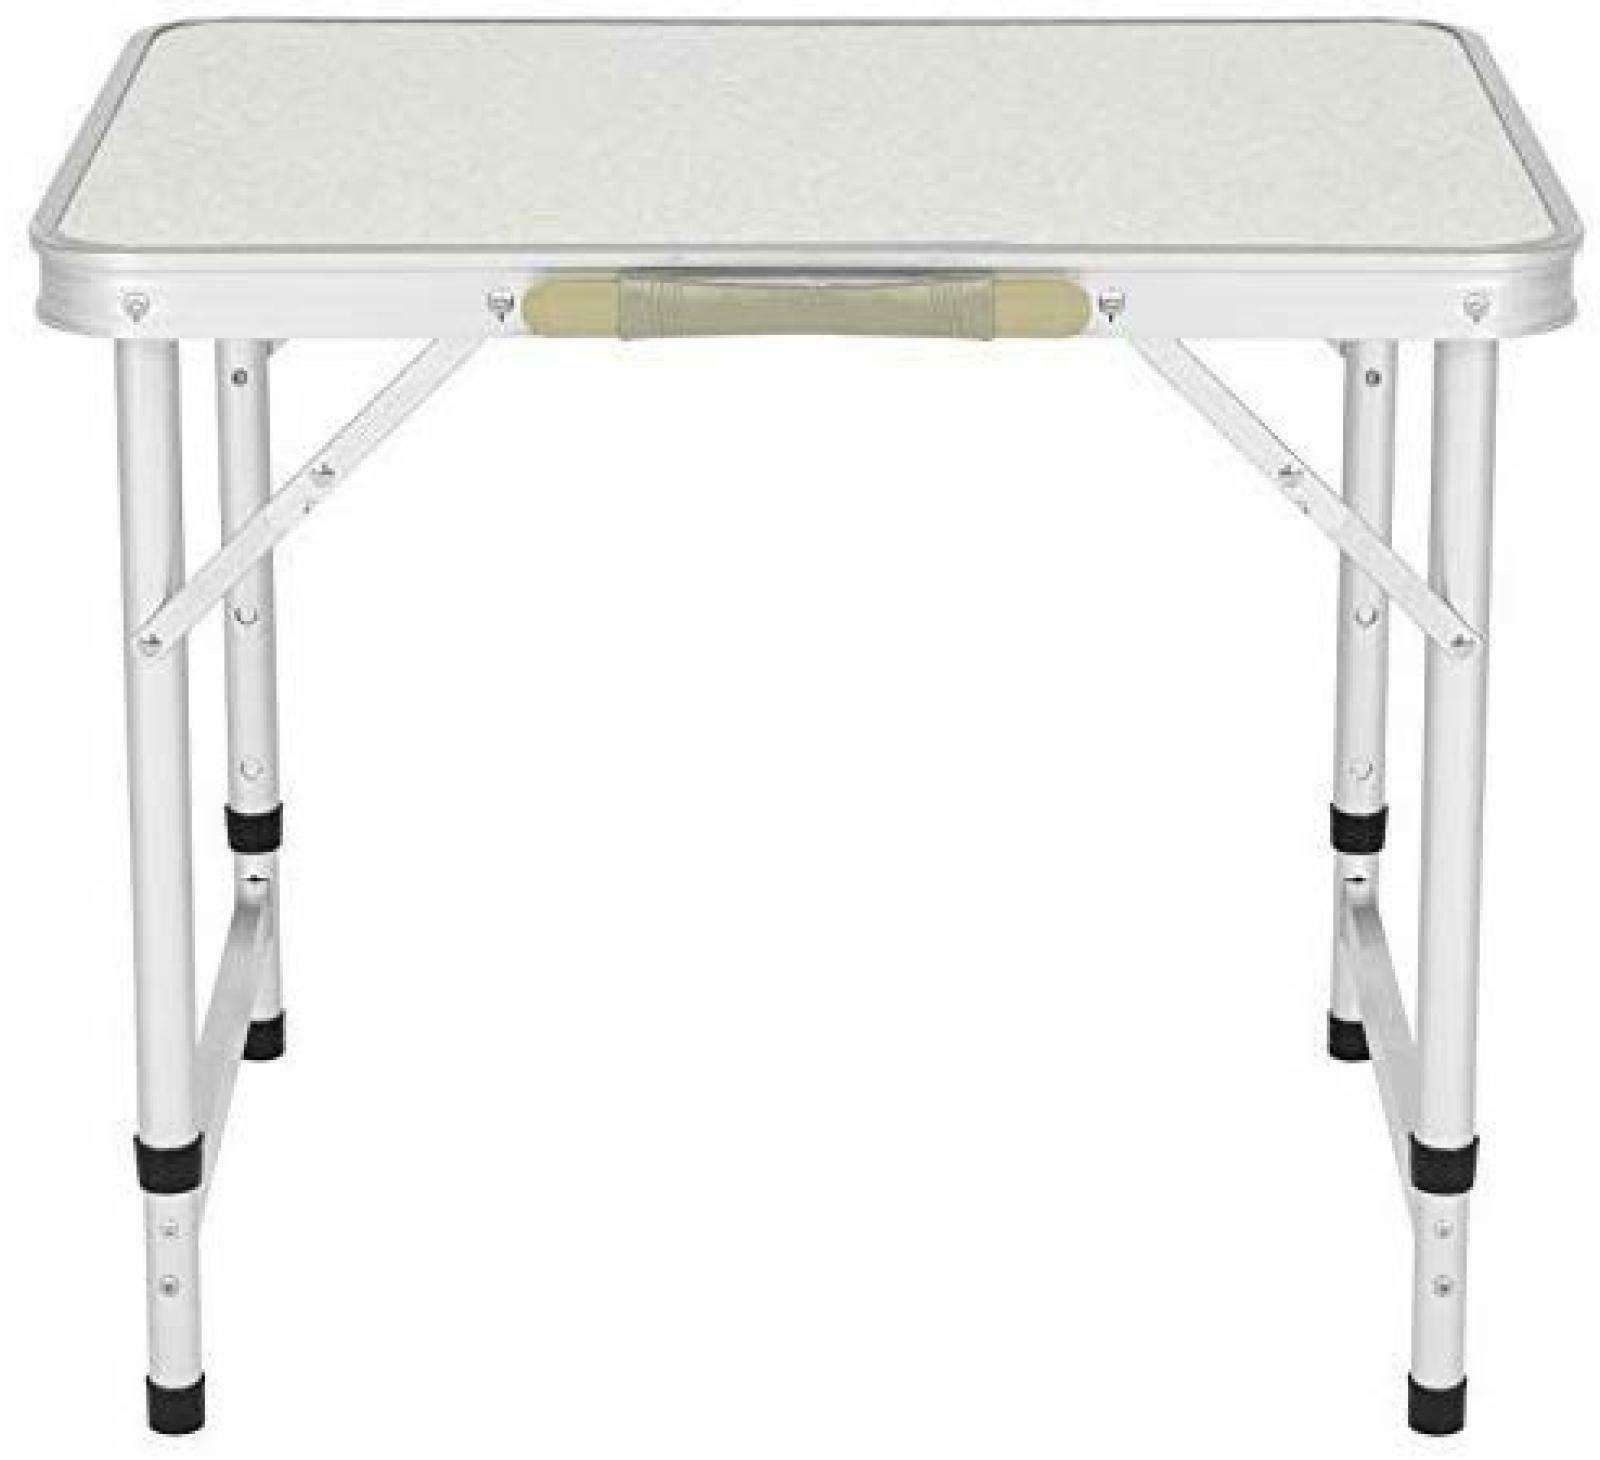 PICNIC FOLDING TABLE Aluminum Adjustable Legs Portable Camp